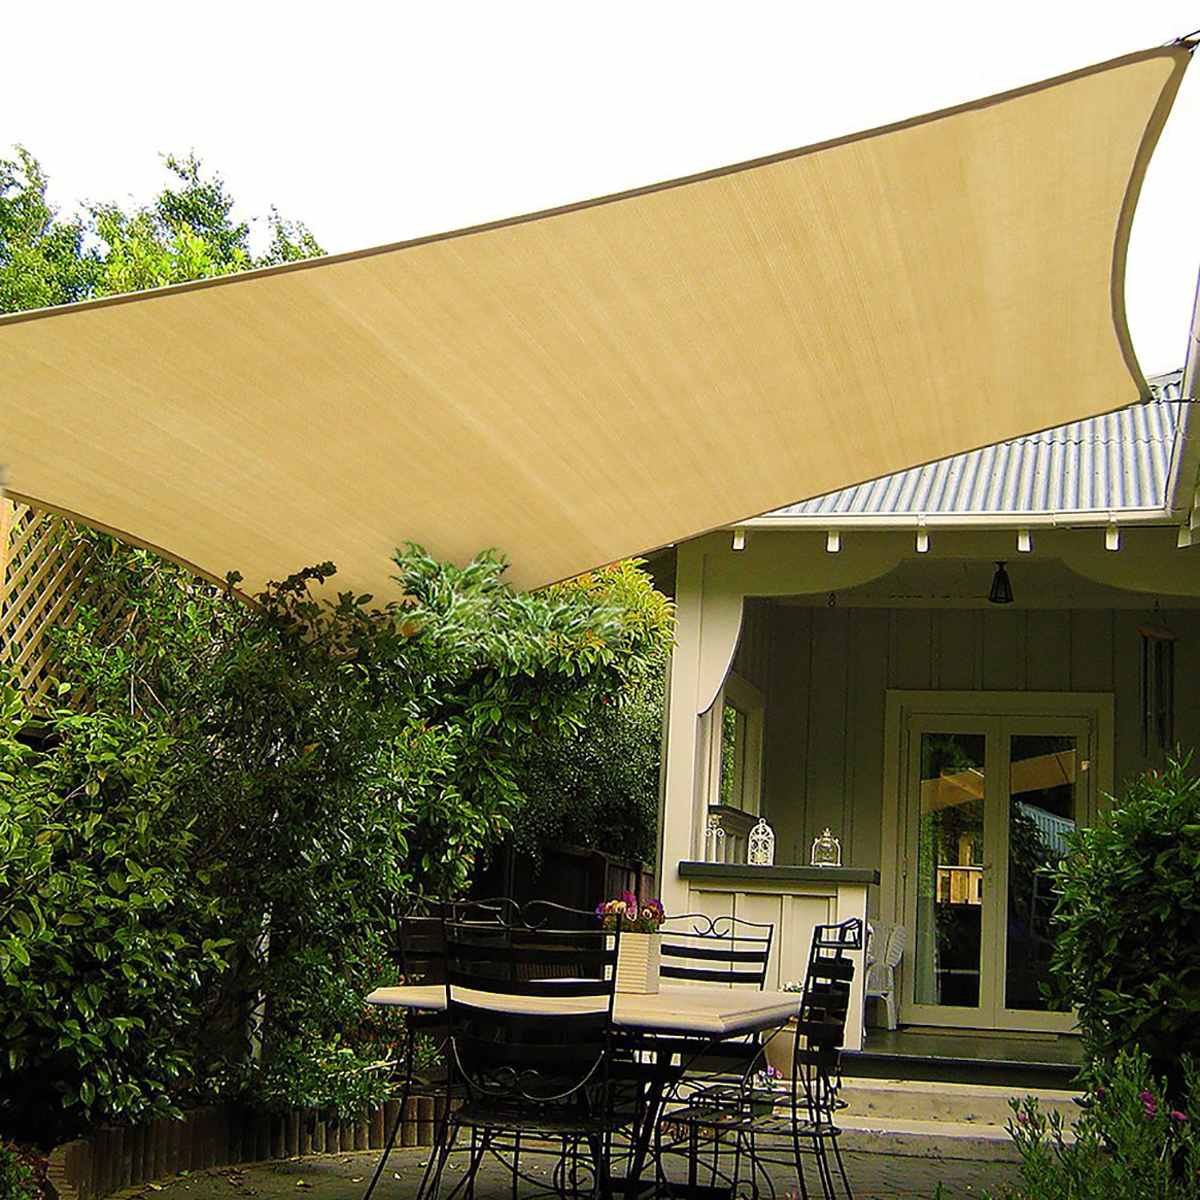 280gsm HDPE Rectangle Sun Shelter Outdoor Sun Shade Sail Cloth Sunshade Protection Canopy Garden Patio Pool Shade Sail Awning280gsm HDPE Rectangle Sun Shelter Outdoor Sun Shade Sail Cloth Sunshade Protection Canopy Garden Patio Pool Shade Sail Awning